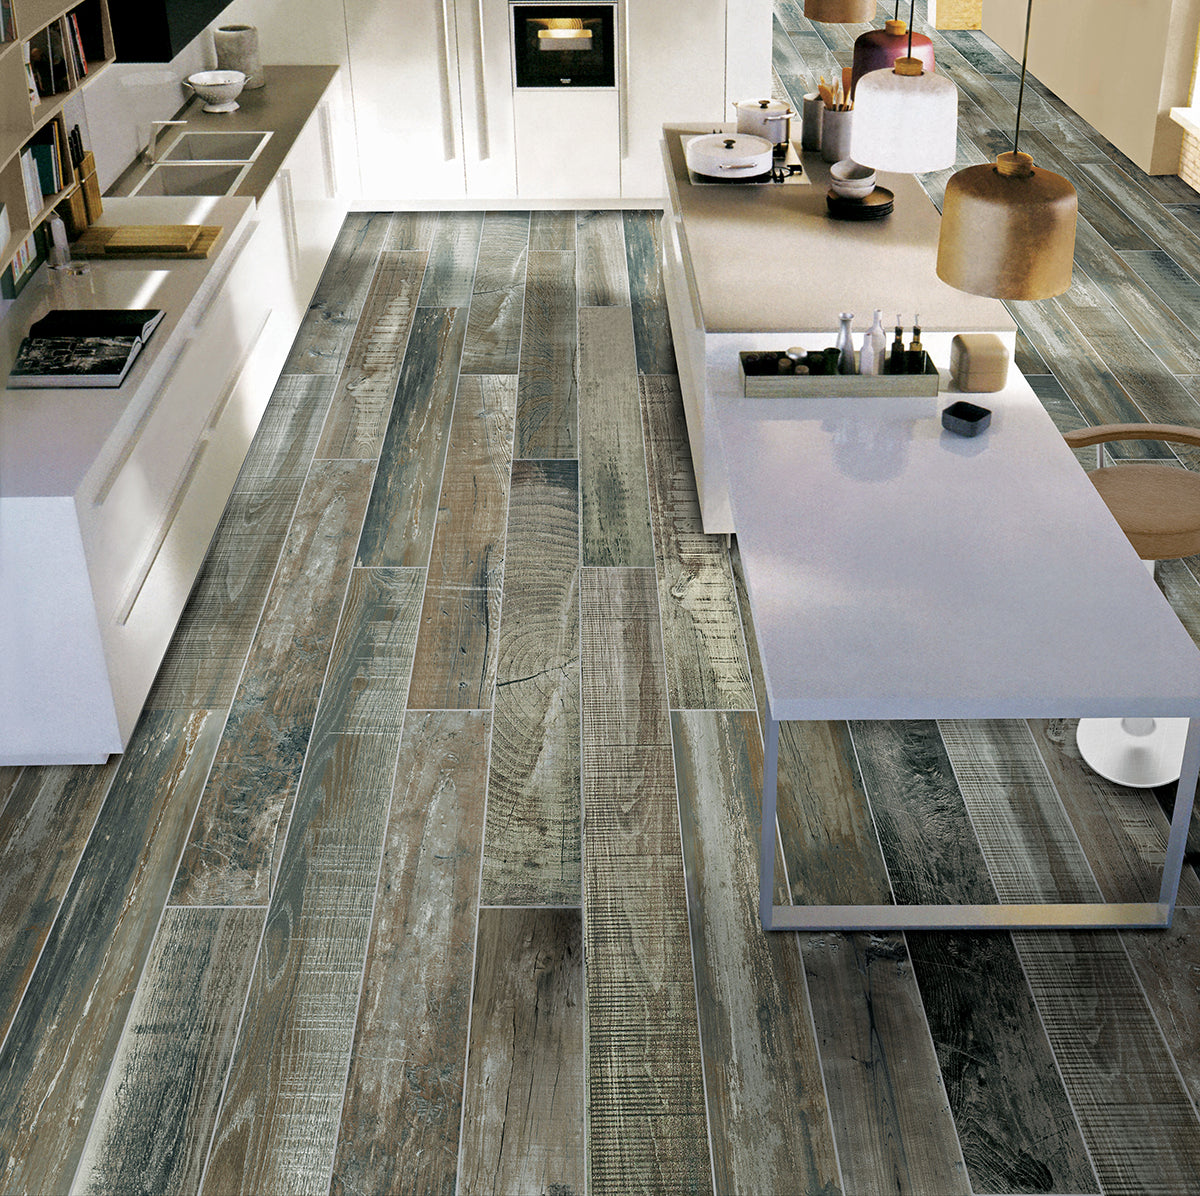 Courchevel Wooden Floor Statement Tiles